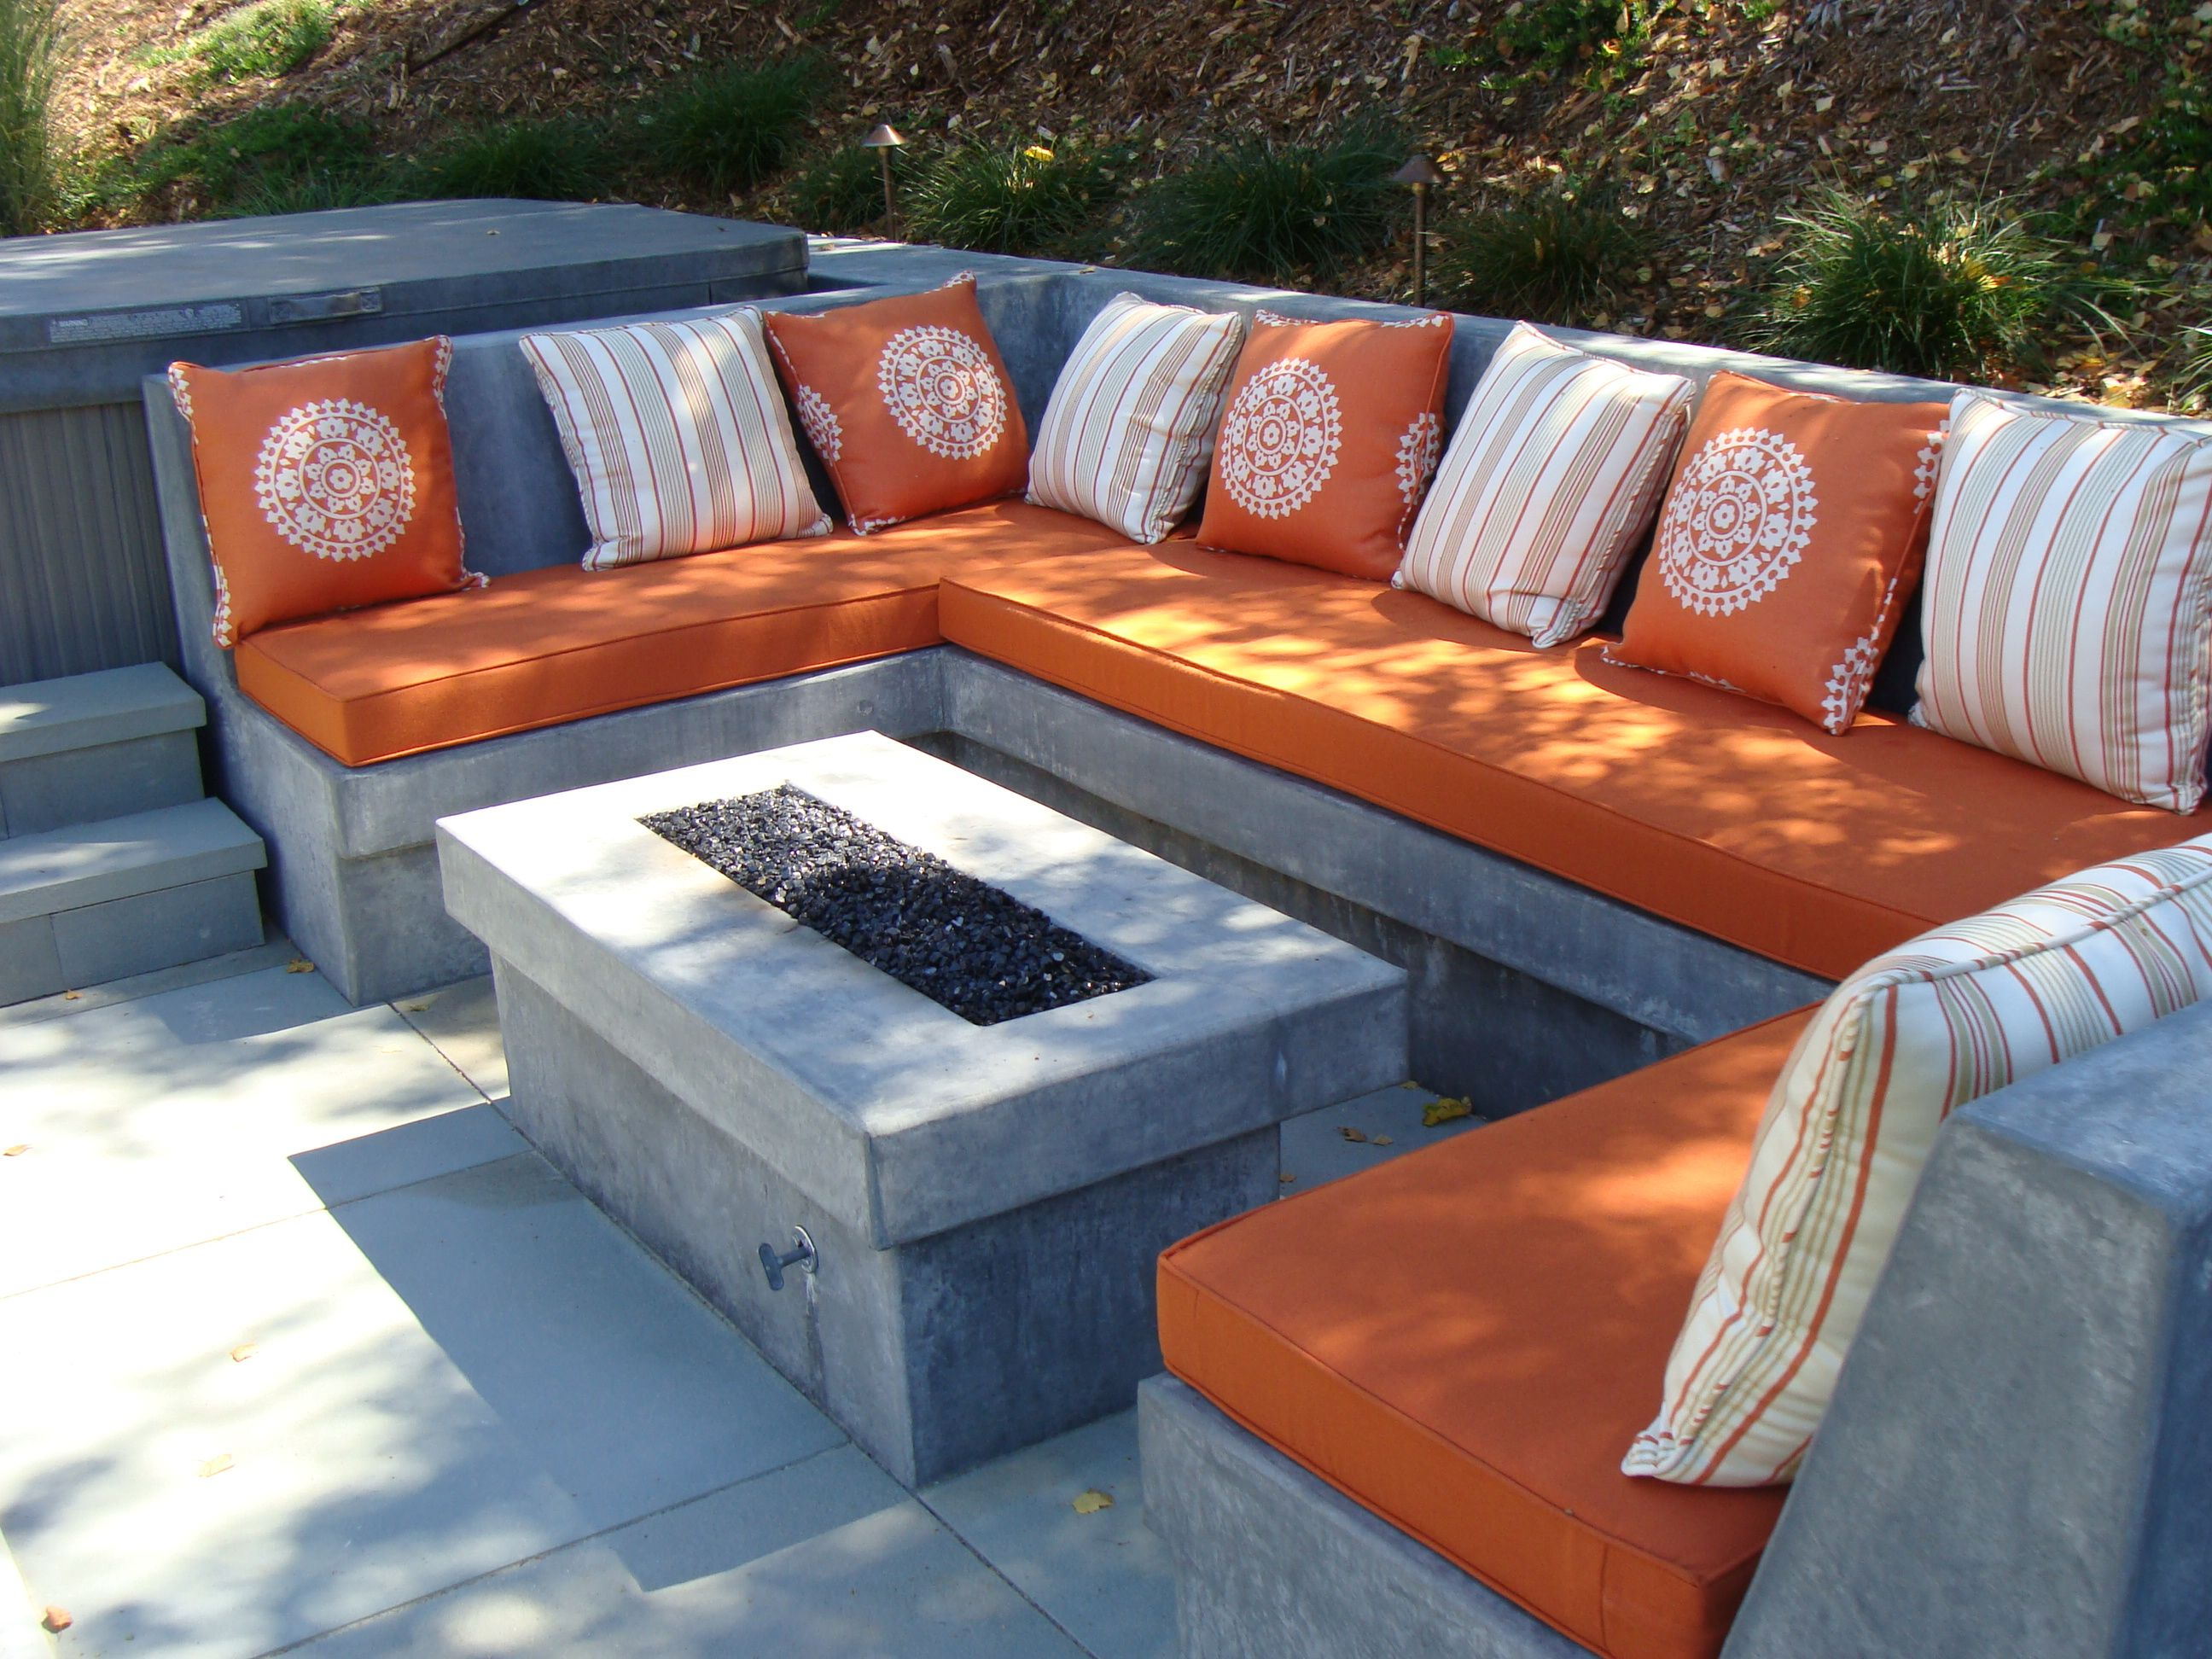 Comfy Seat Wall Surround And Fire Pit For Hot Tub Patio In